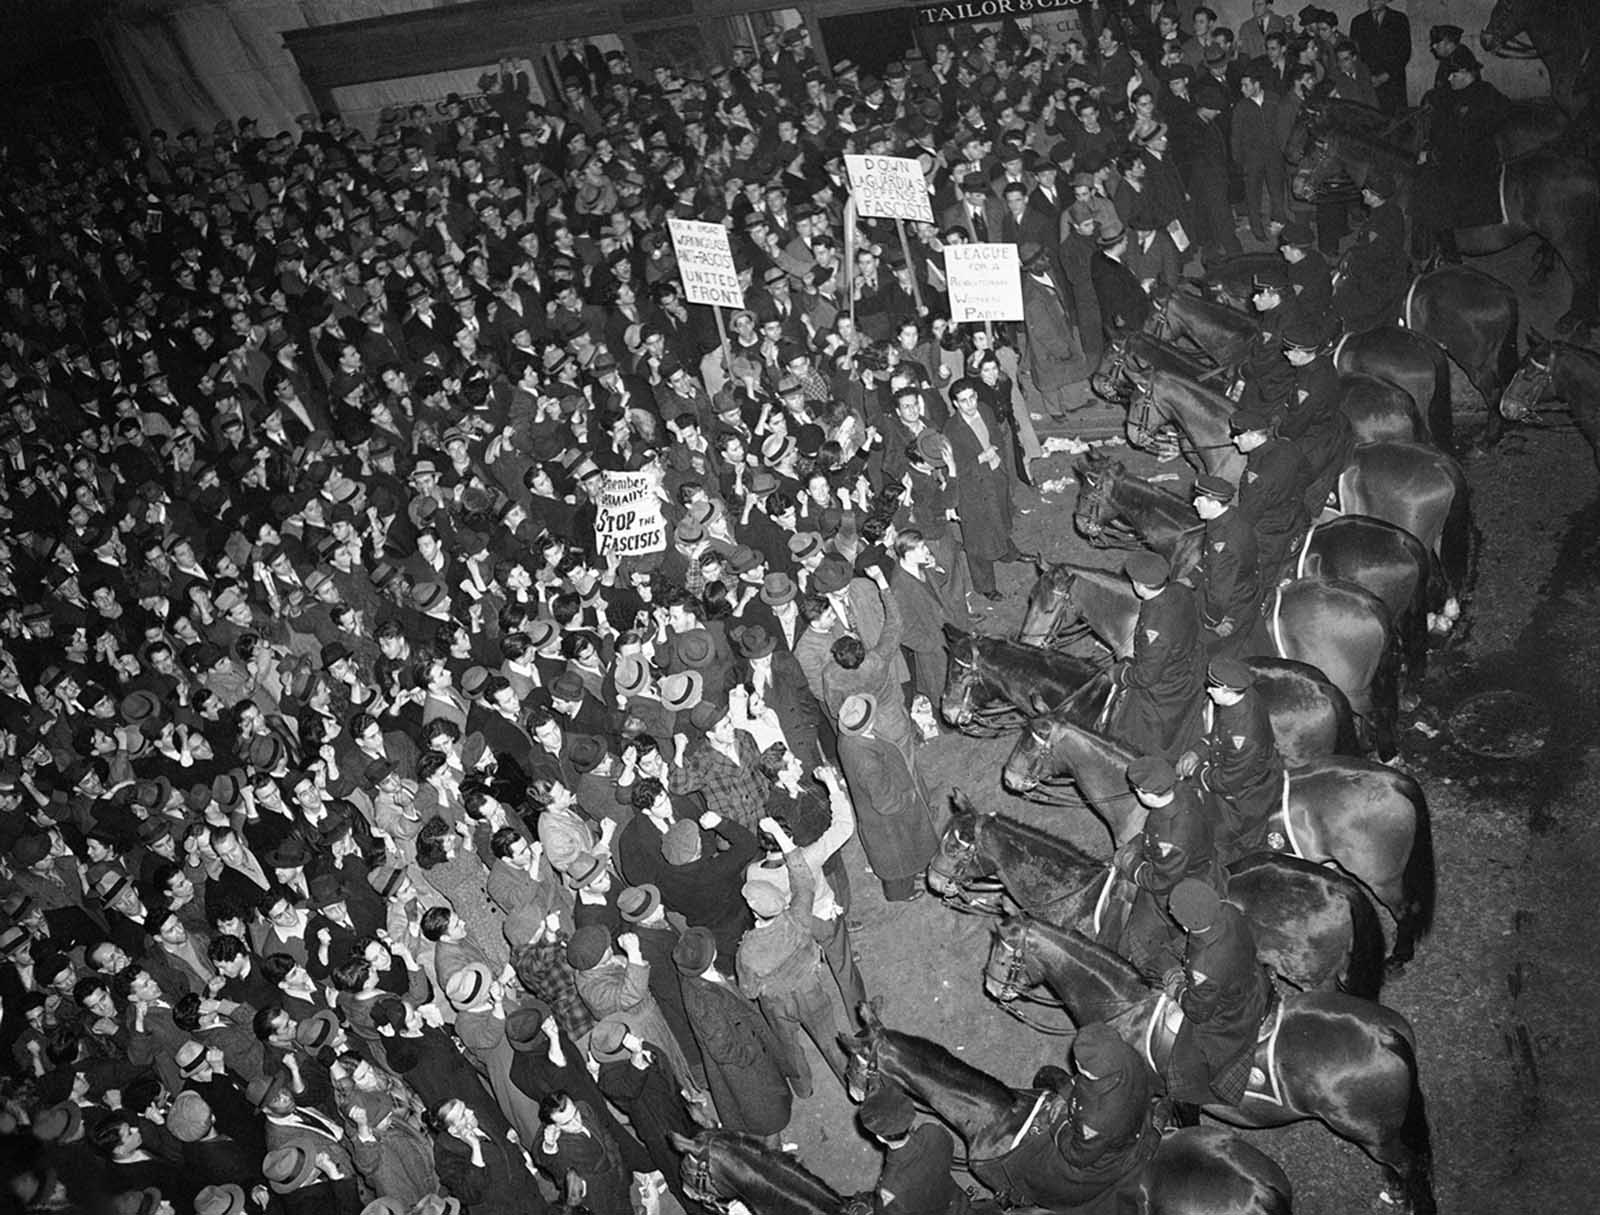 New York City's mounted police form a solid line outside Madison Square Garden on February 20, 1939, to hold in check a crowd which packed the streets around the Garden where the German American Bund was holding a rally. To prevent any clash between bundsmen and counter-demonstrators, police surrounded the area with a force of 1,500.